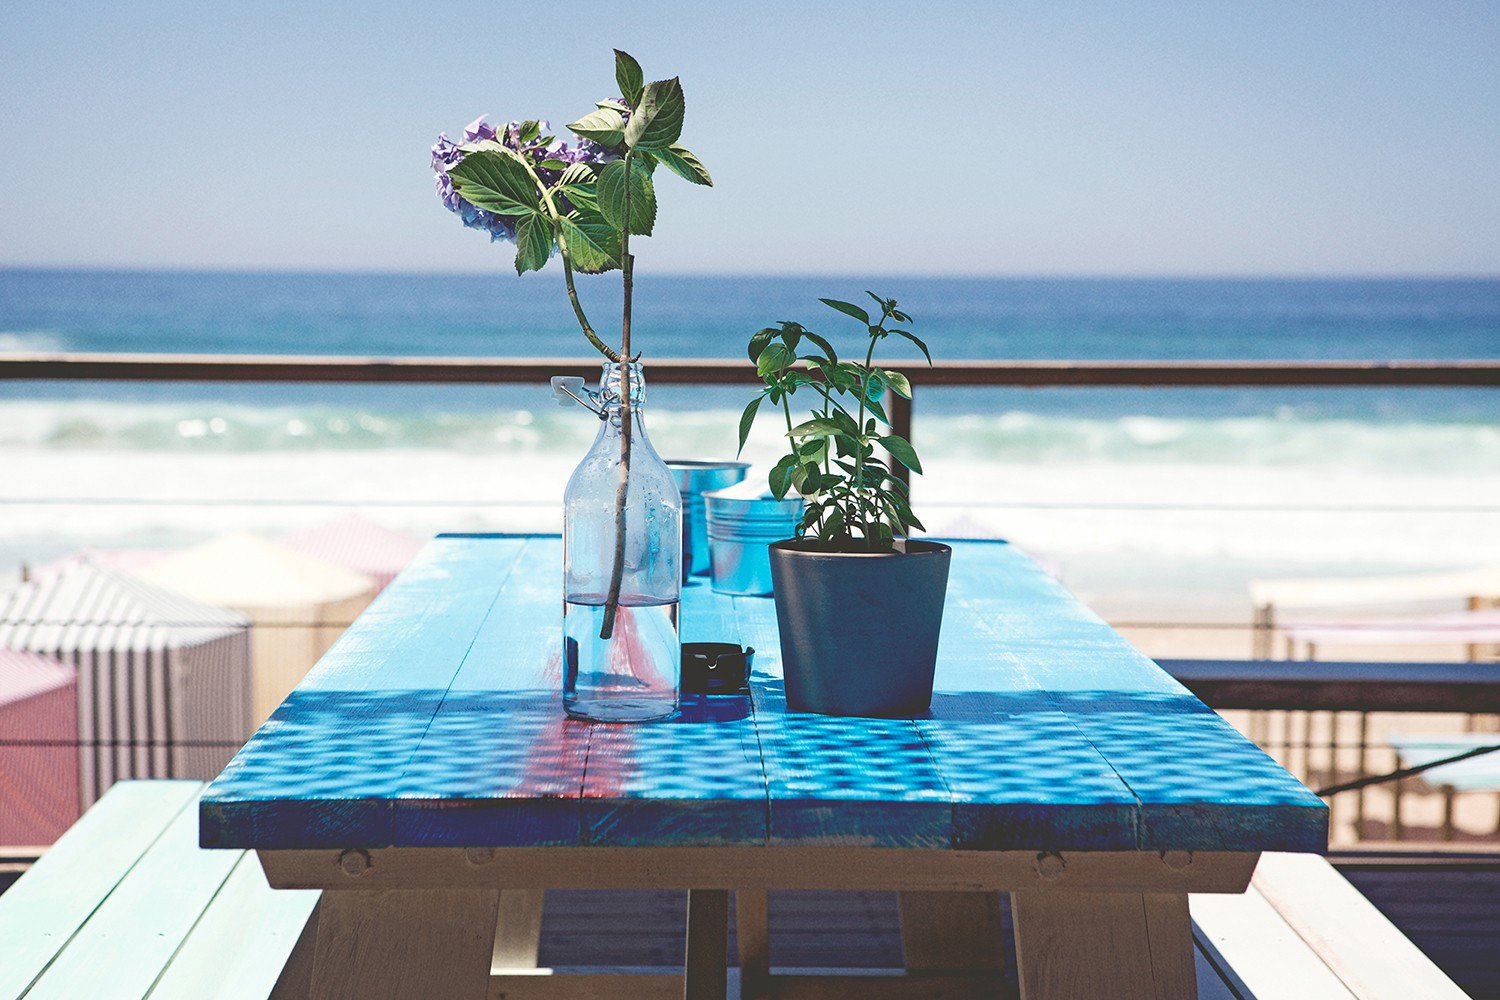 Picknicktable at loungedeck with sea view